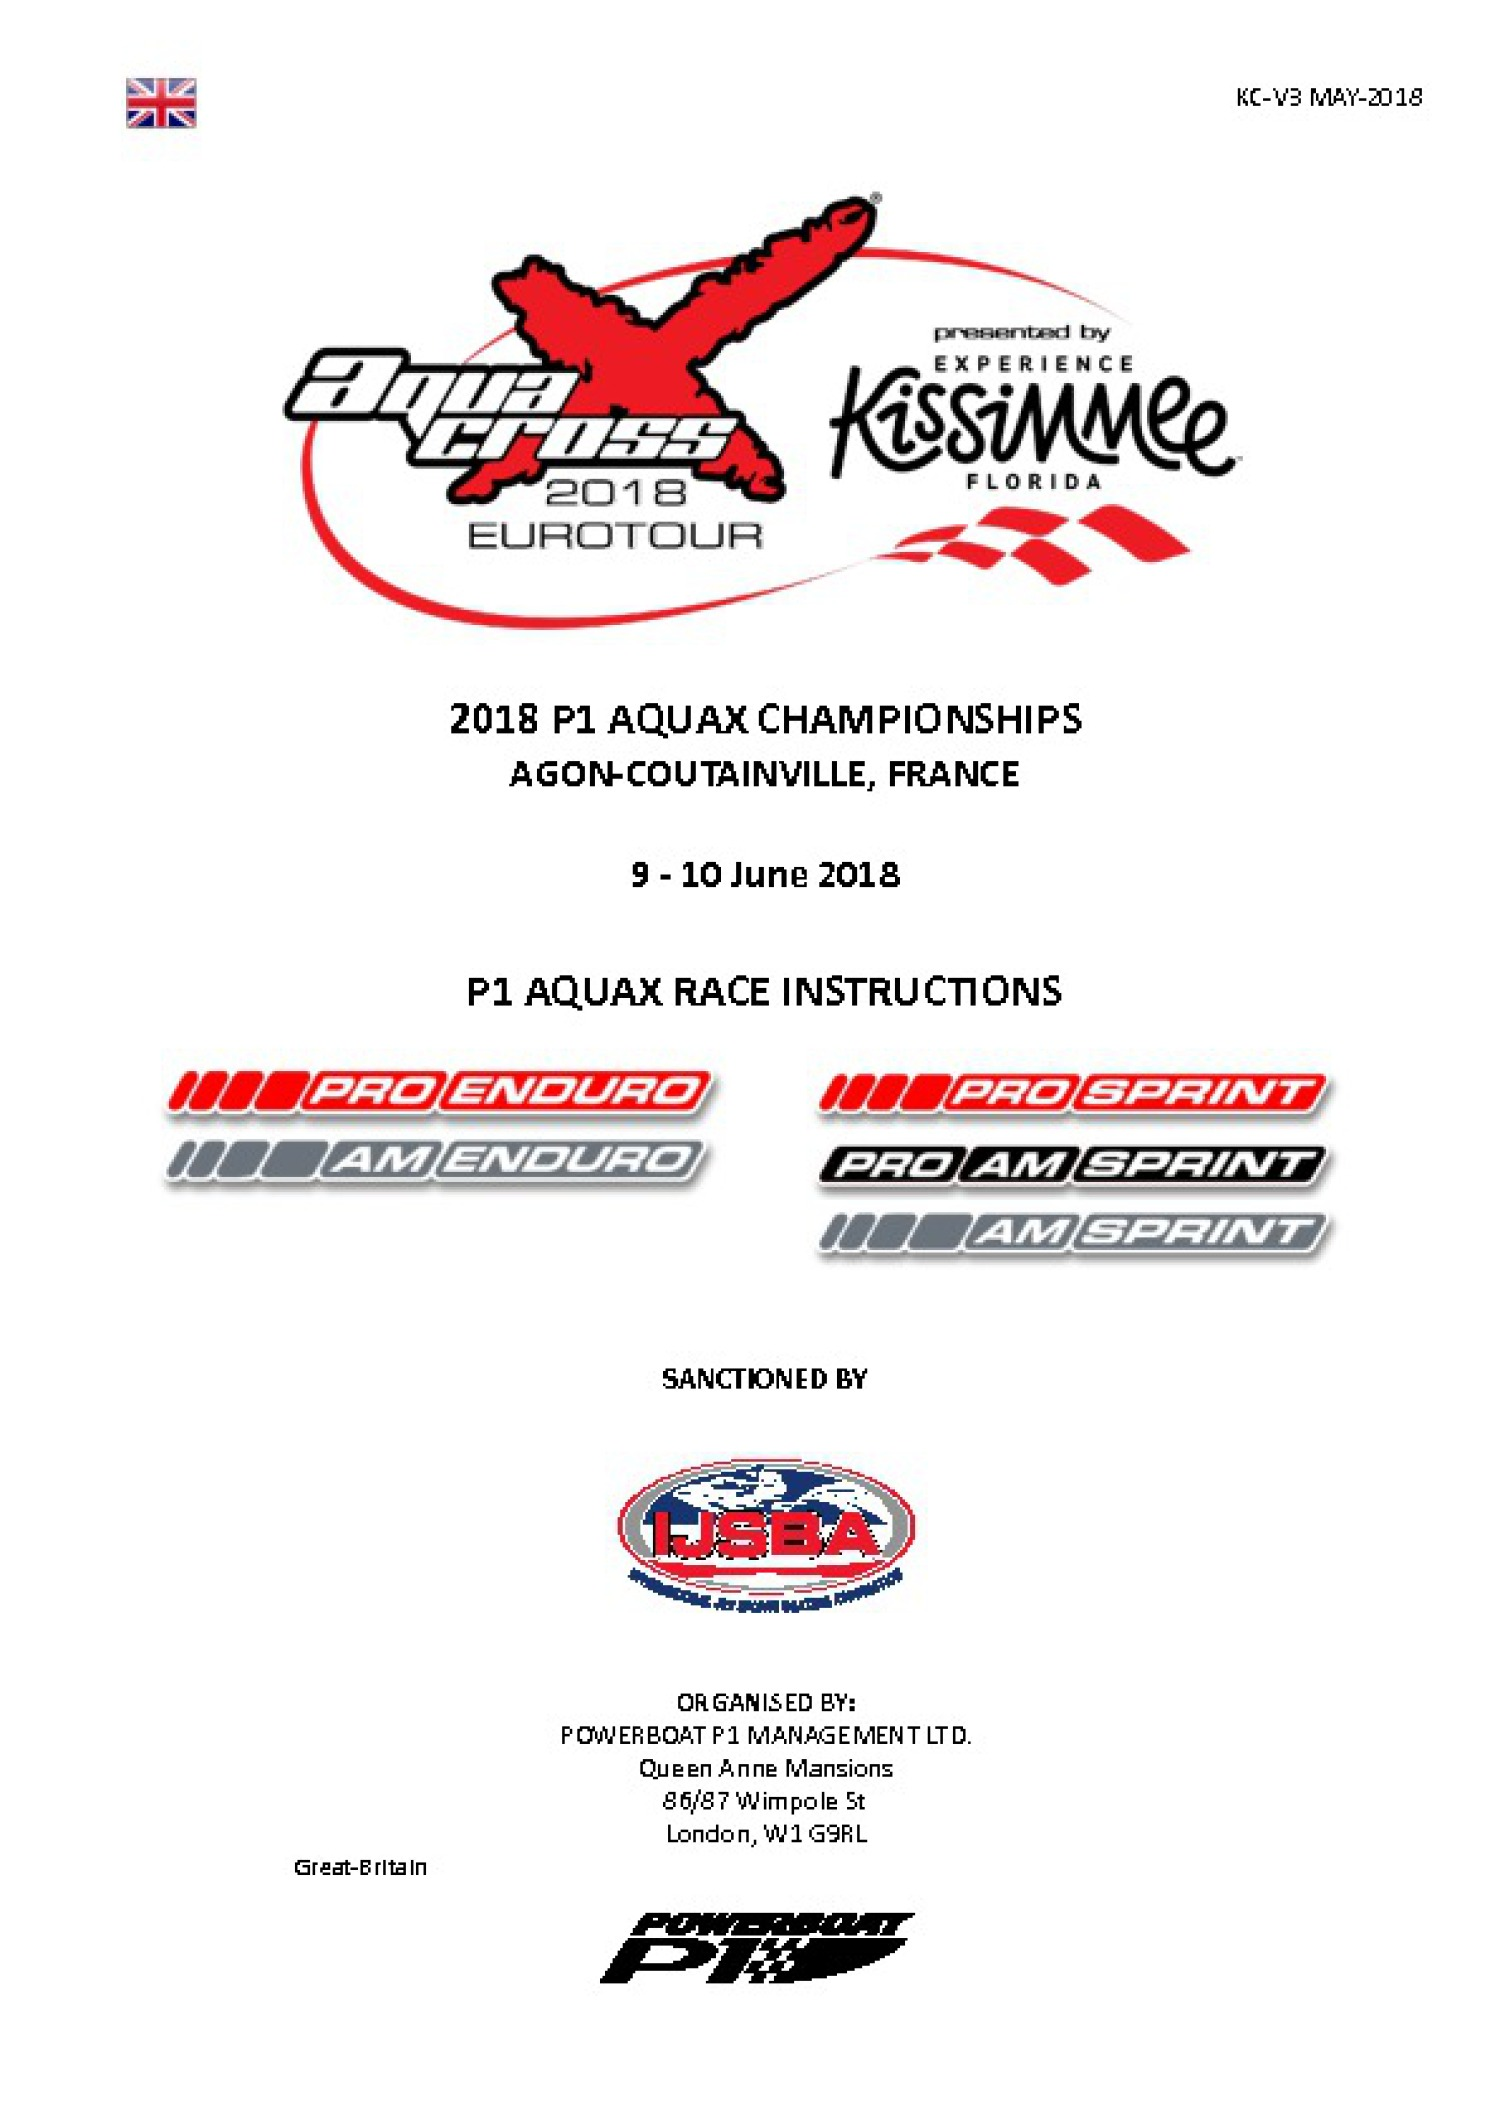 Agon-Coutainville / Race Instructions in ENG